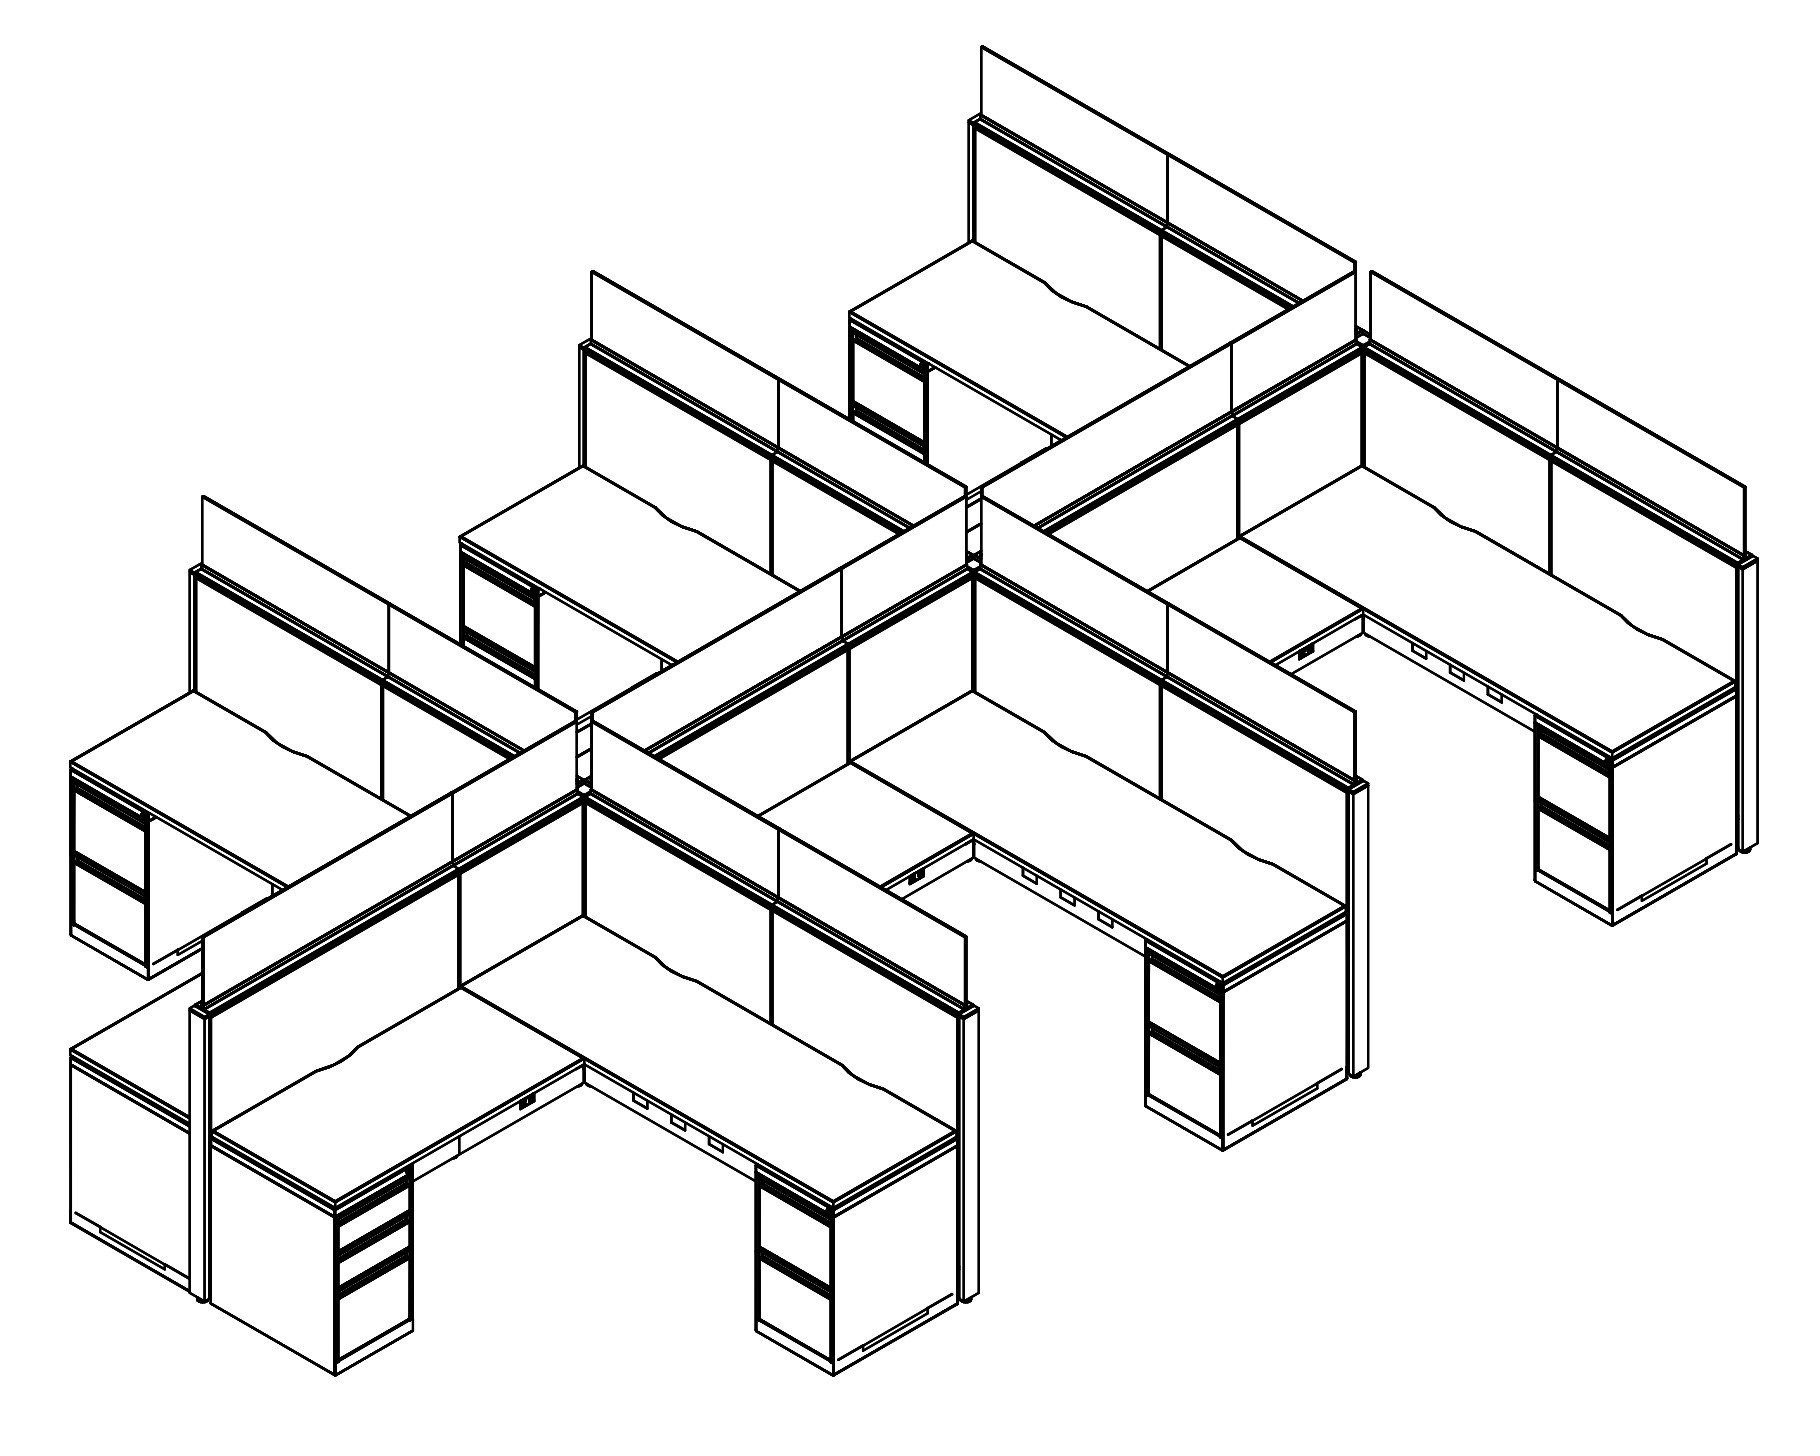 Technical drawing of Global's Evolve EV510 System, configured as a 6 pack of office cubicles. On the outer-sides of this arrangement is a pair of desk drawers.